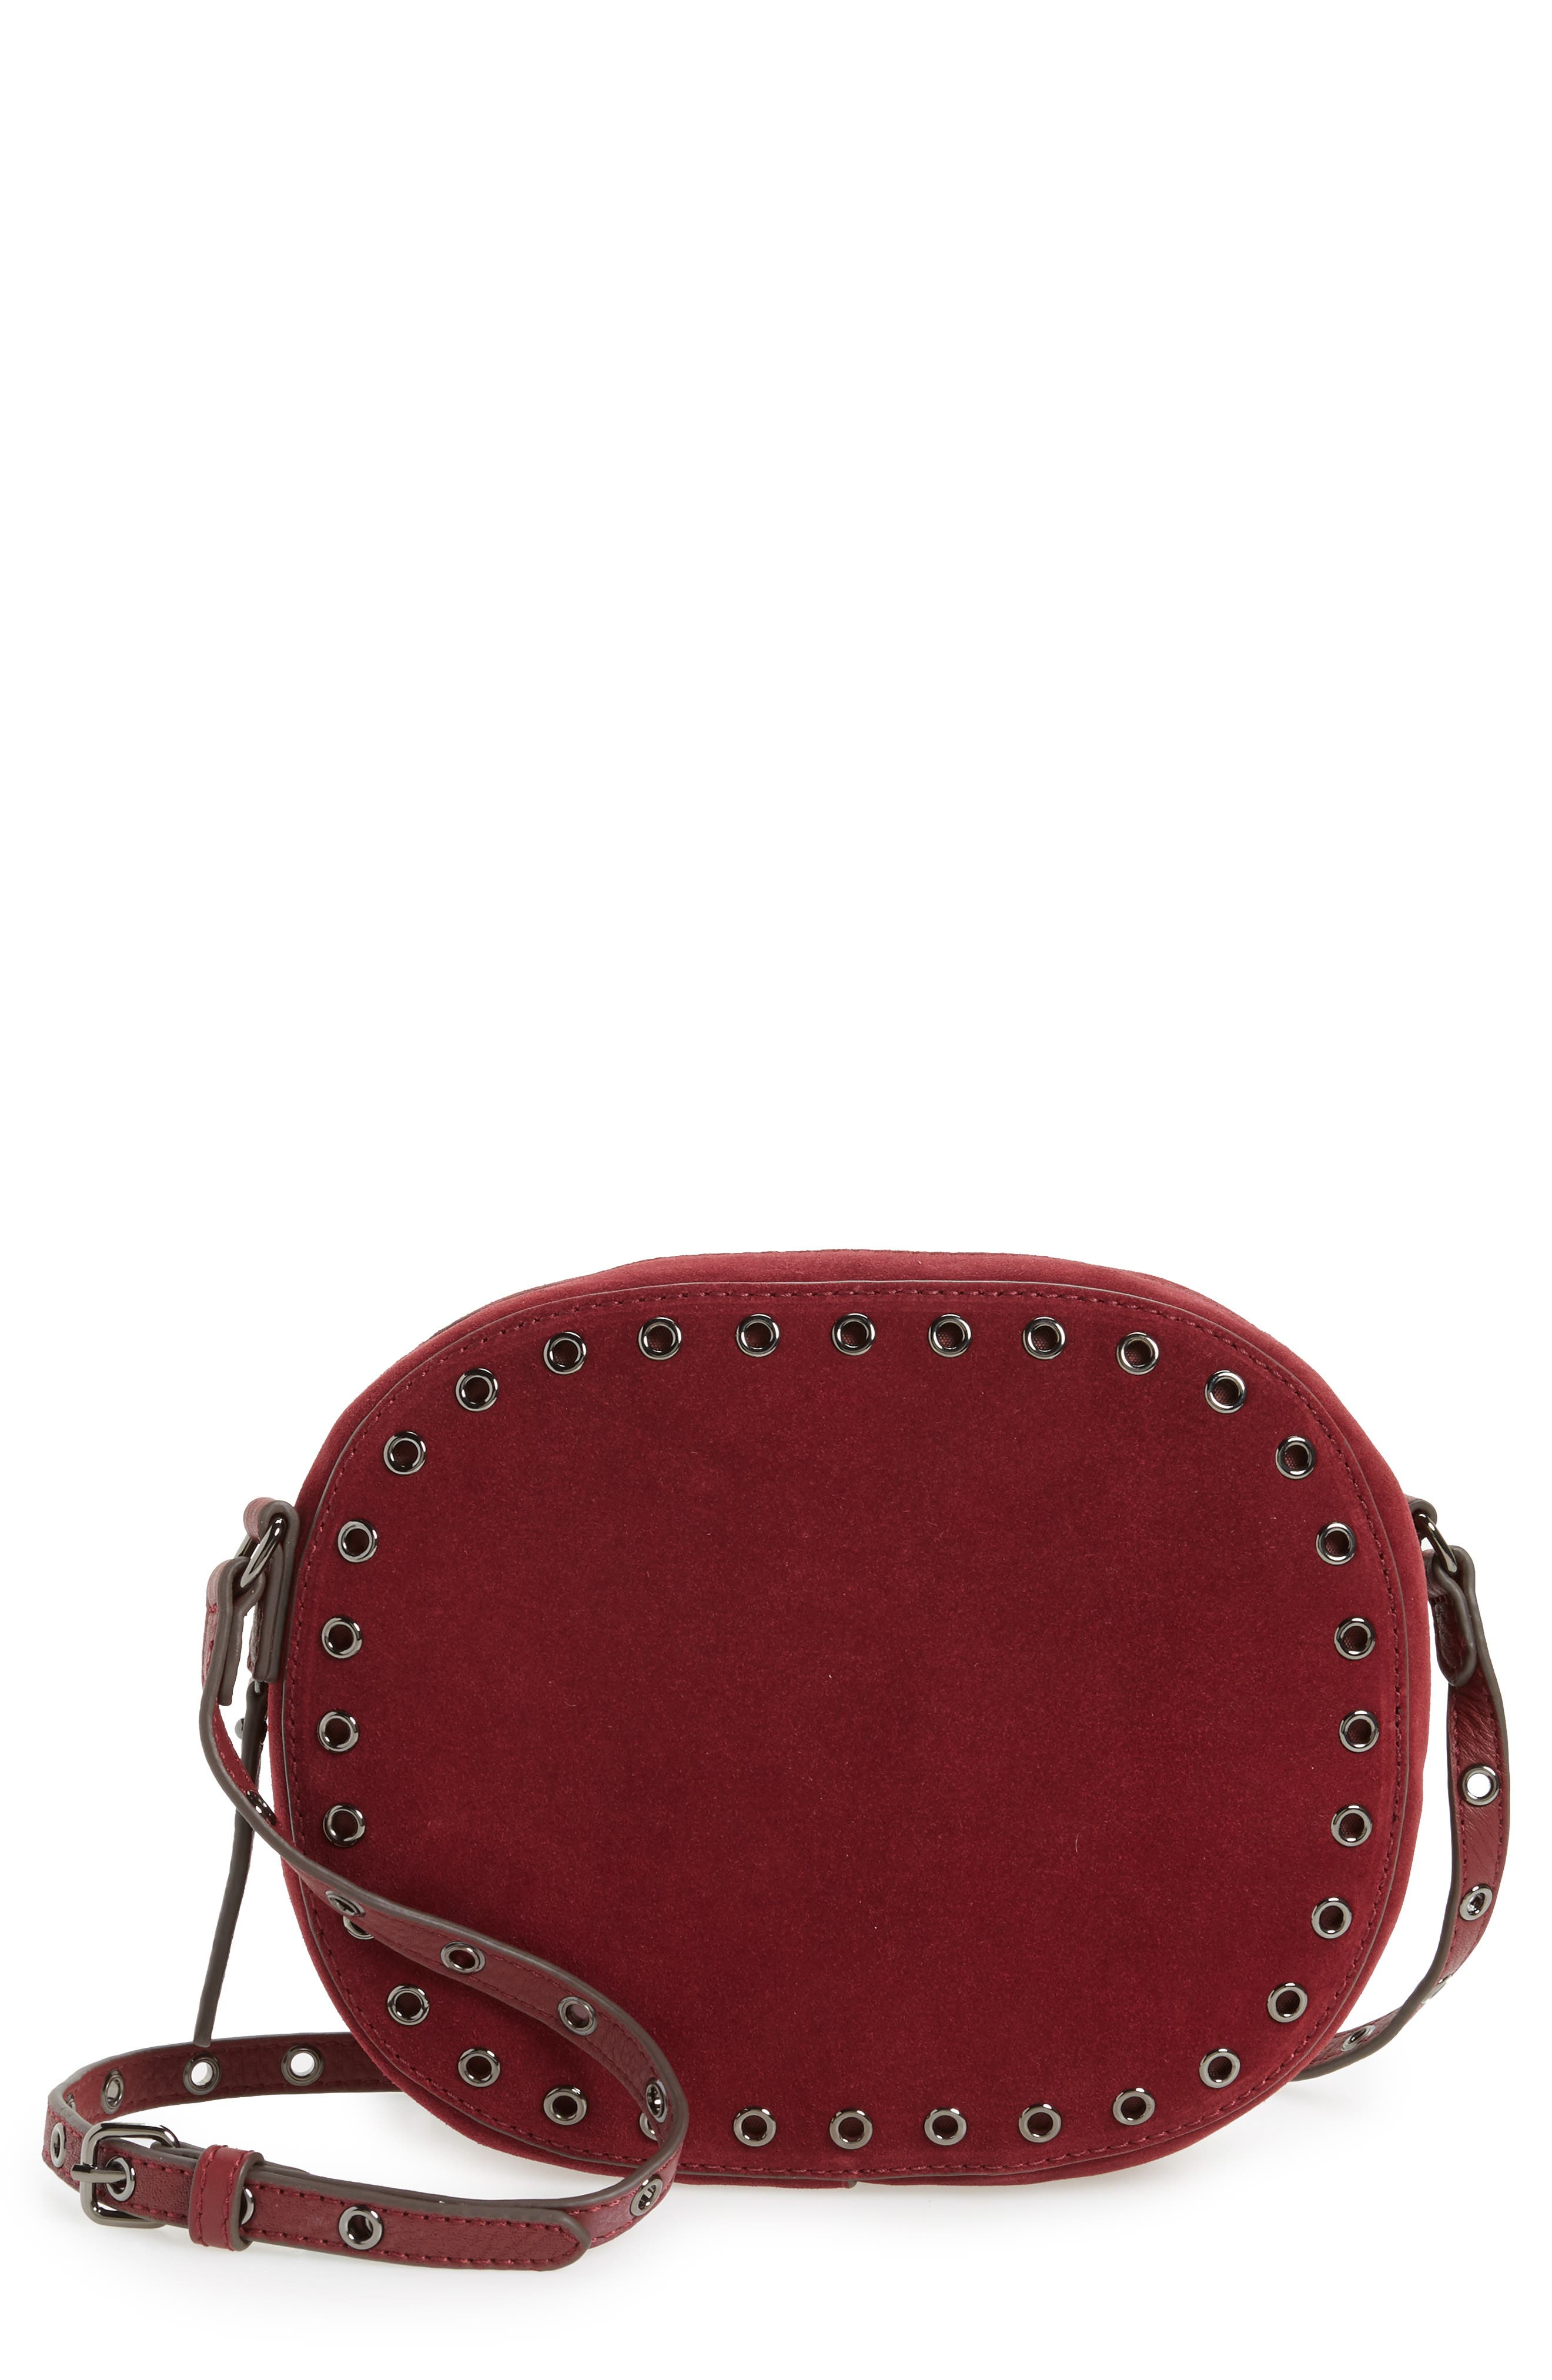 Alternate Image 1 Selected - Vince Camuto Areli Suede & Leather Crossbody Bag